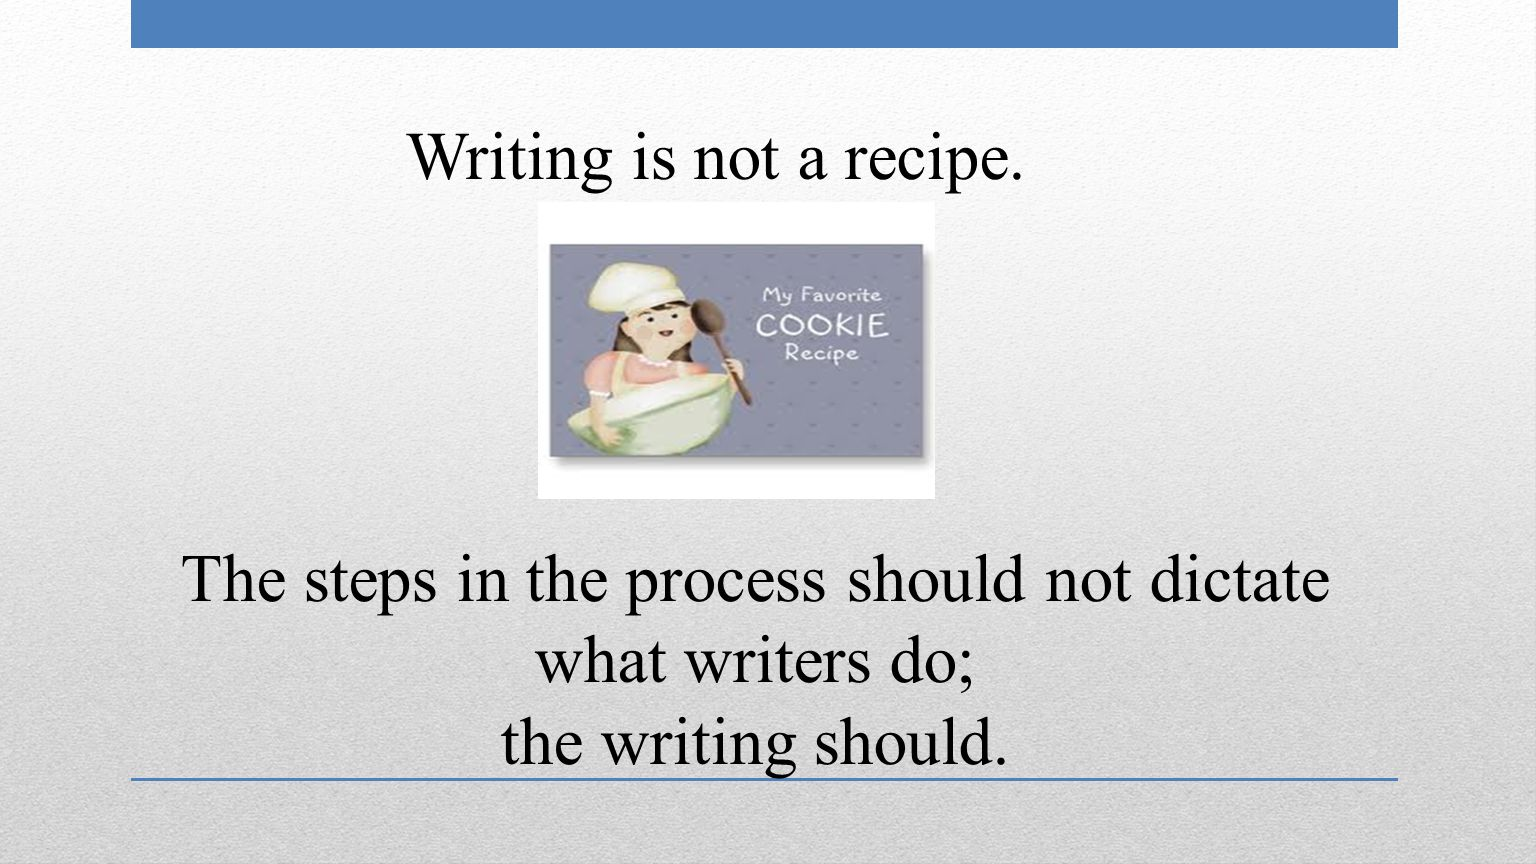 The steps in the process should not dictate what writers do; the writing should.